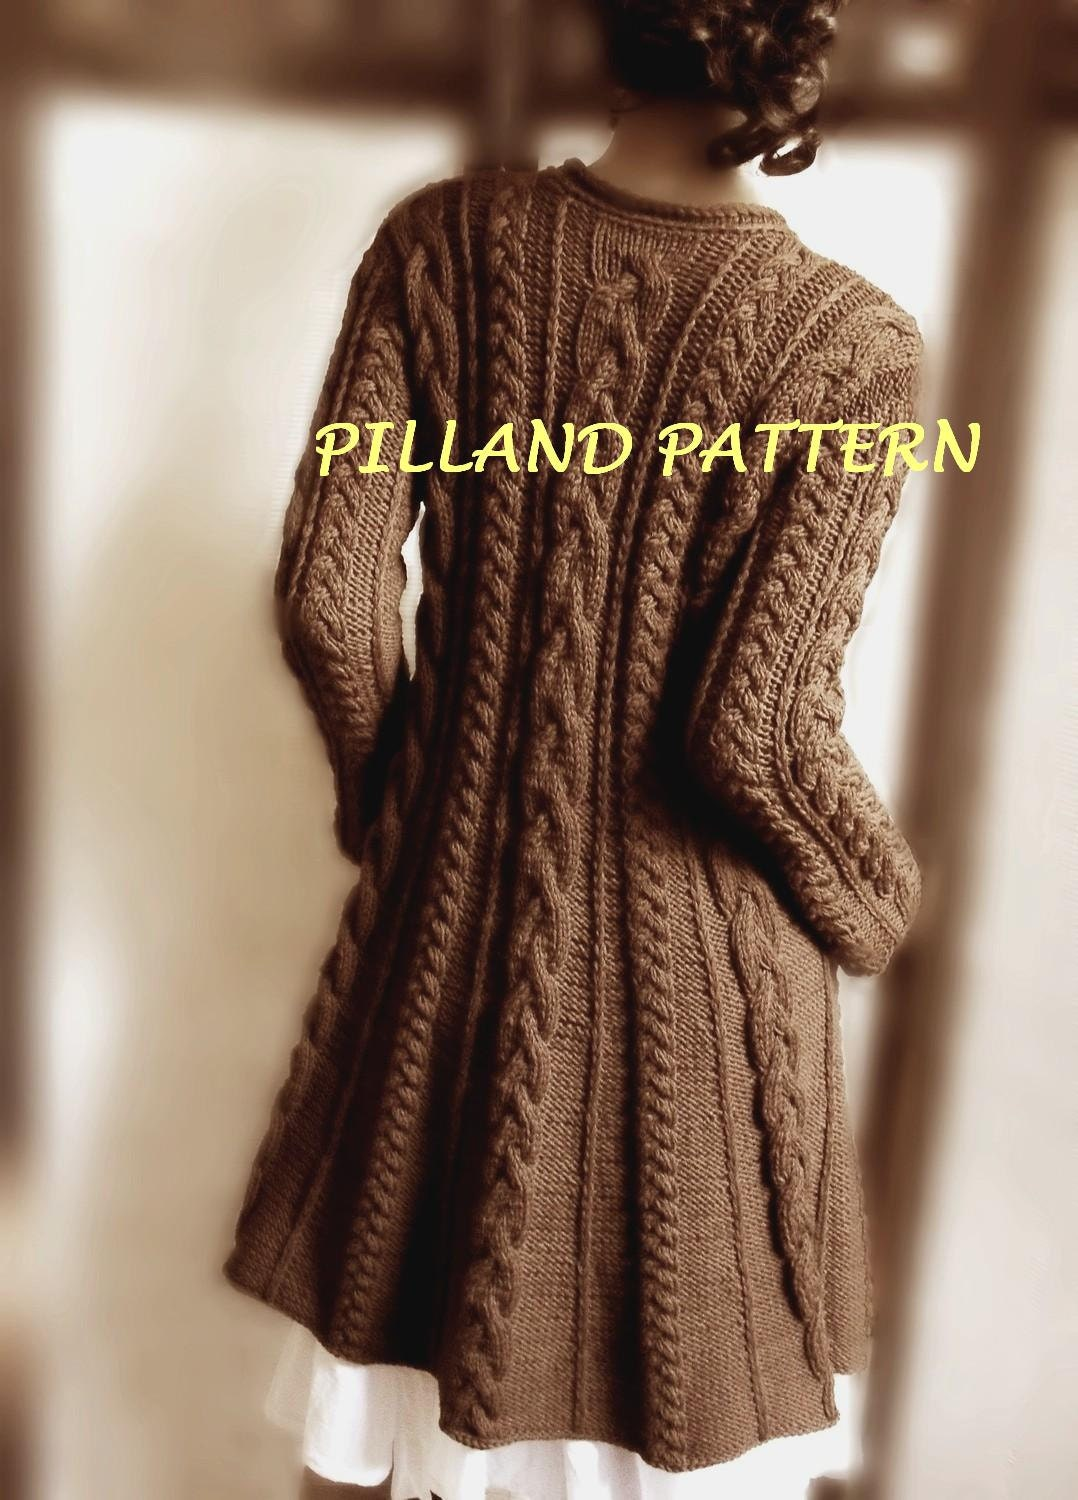 Knitting Patterns For Winter Jackets : Sweater Coat knitting pattern PDF Cable knit A line coat